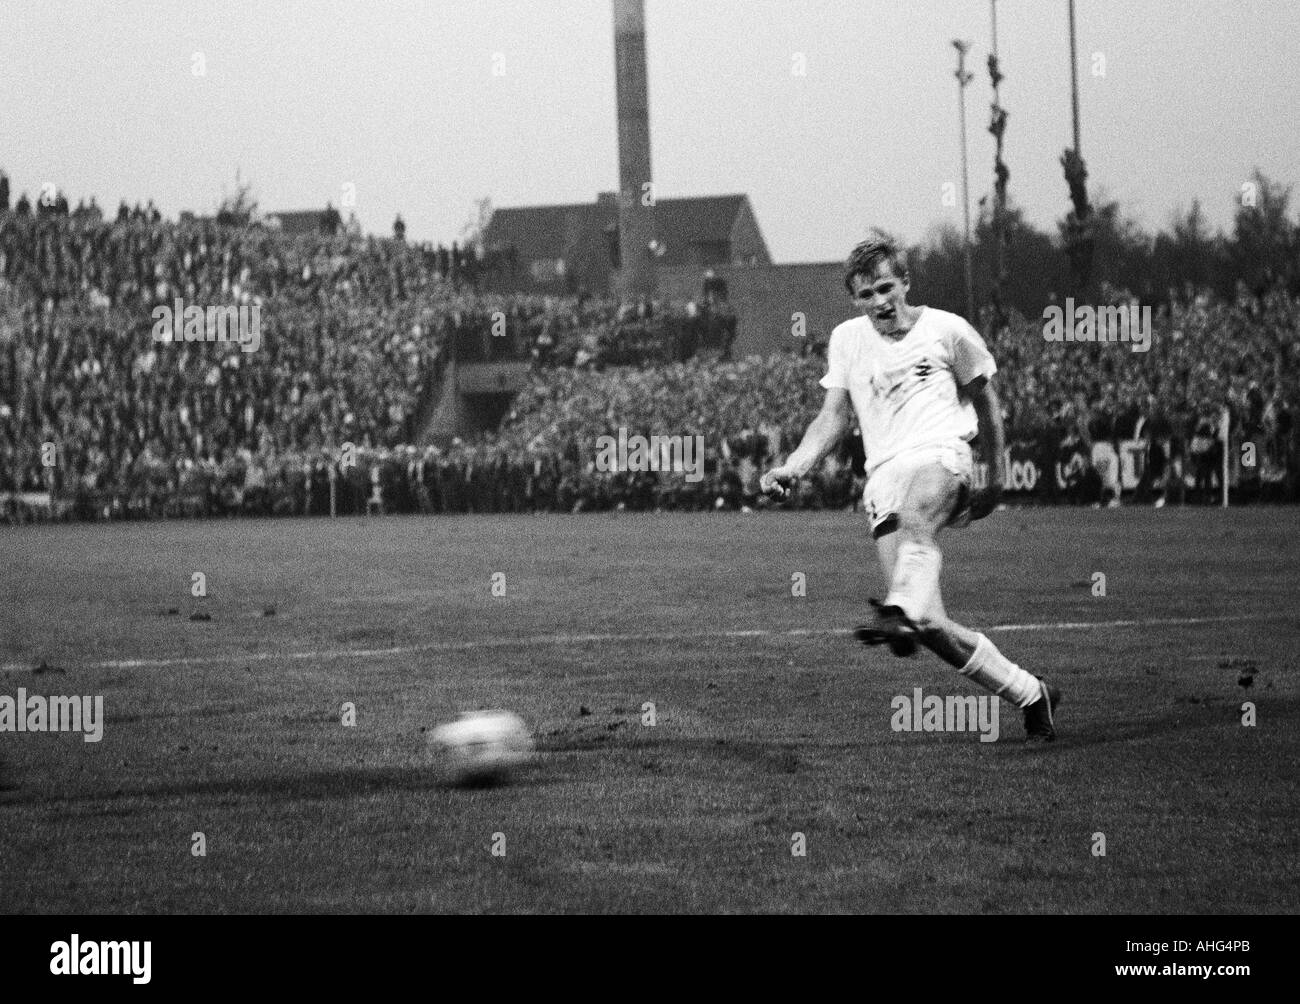 football, Bundesliga, 1967/1968, Borussia Moenchengladbach versus Borussia Dortmund 2:2, Boekelberg Stadium, scene of the match, Klaus Ackermann (Gladbach) shots on goal - Stock Image